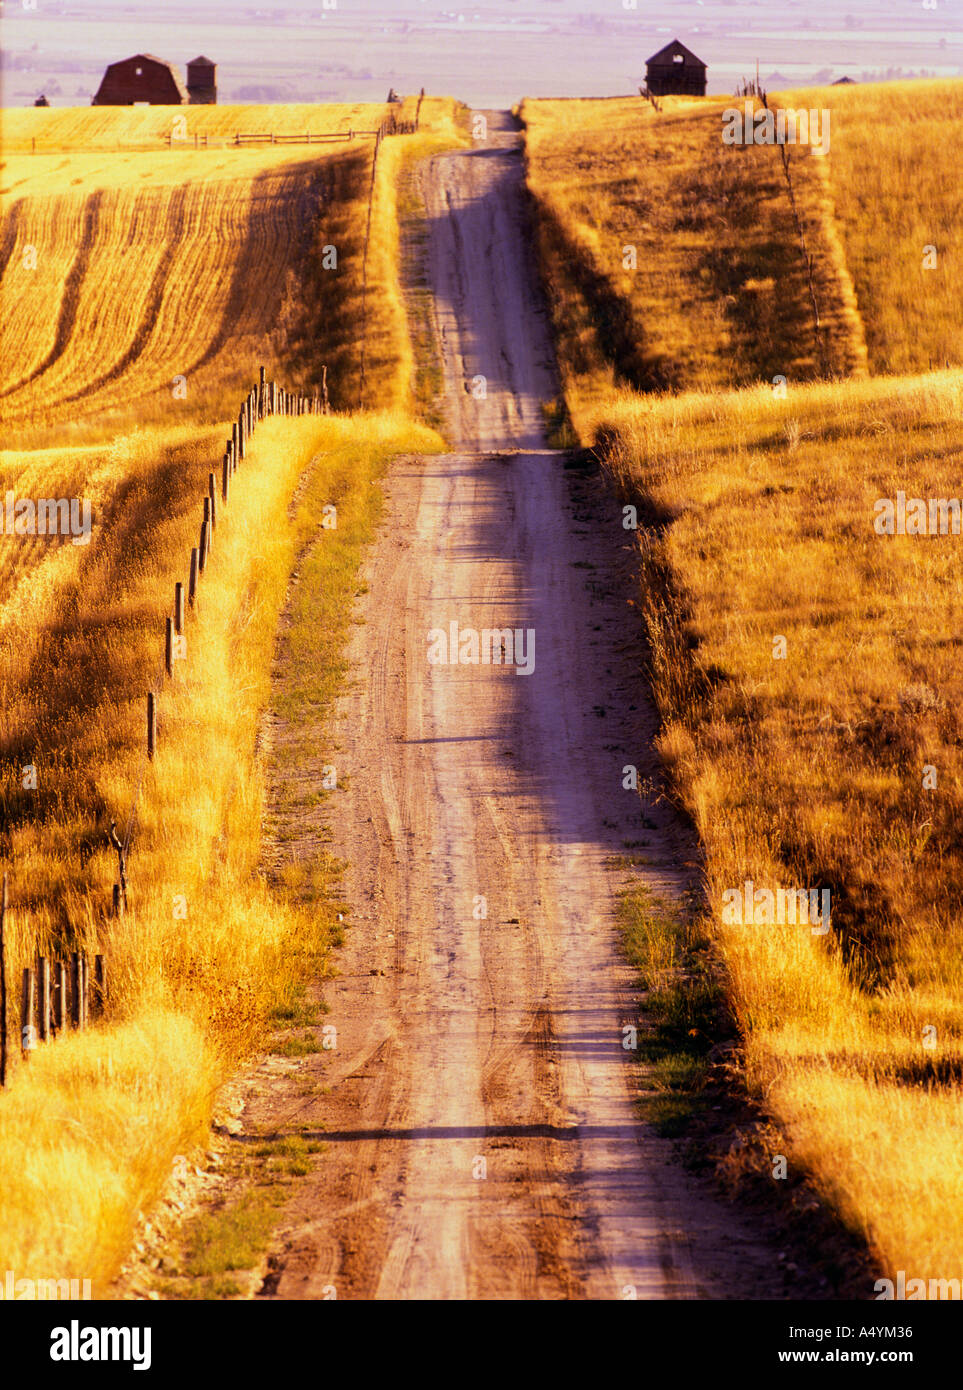 Rutted dirt road through harvested wheat stubble fields in late summer in the Gallatin Valley Montana USA - Stock Image